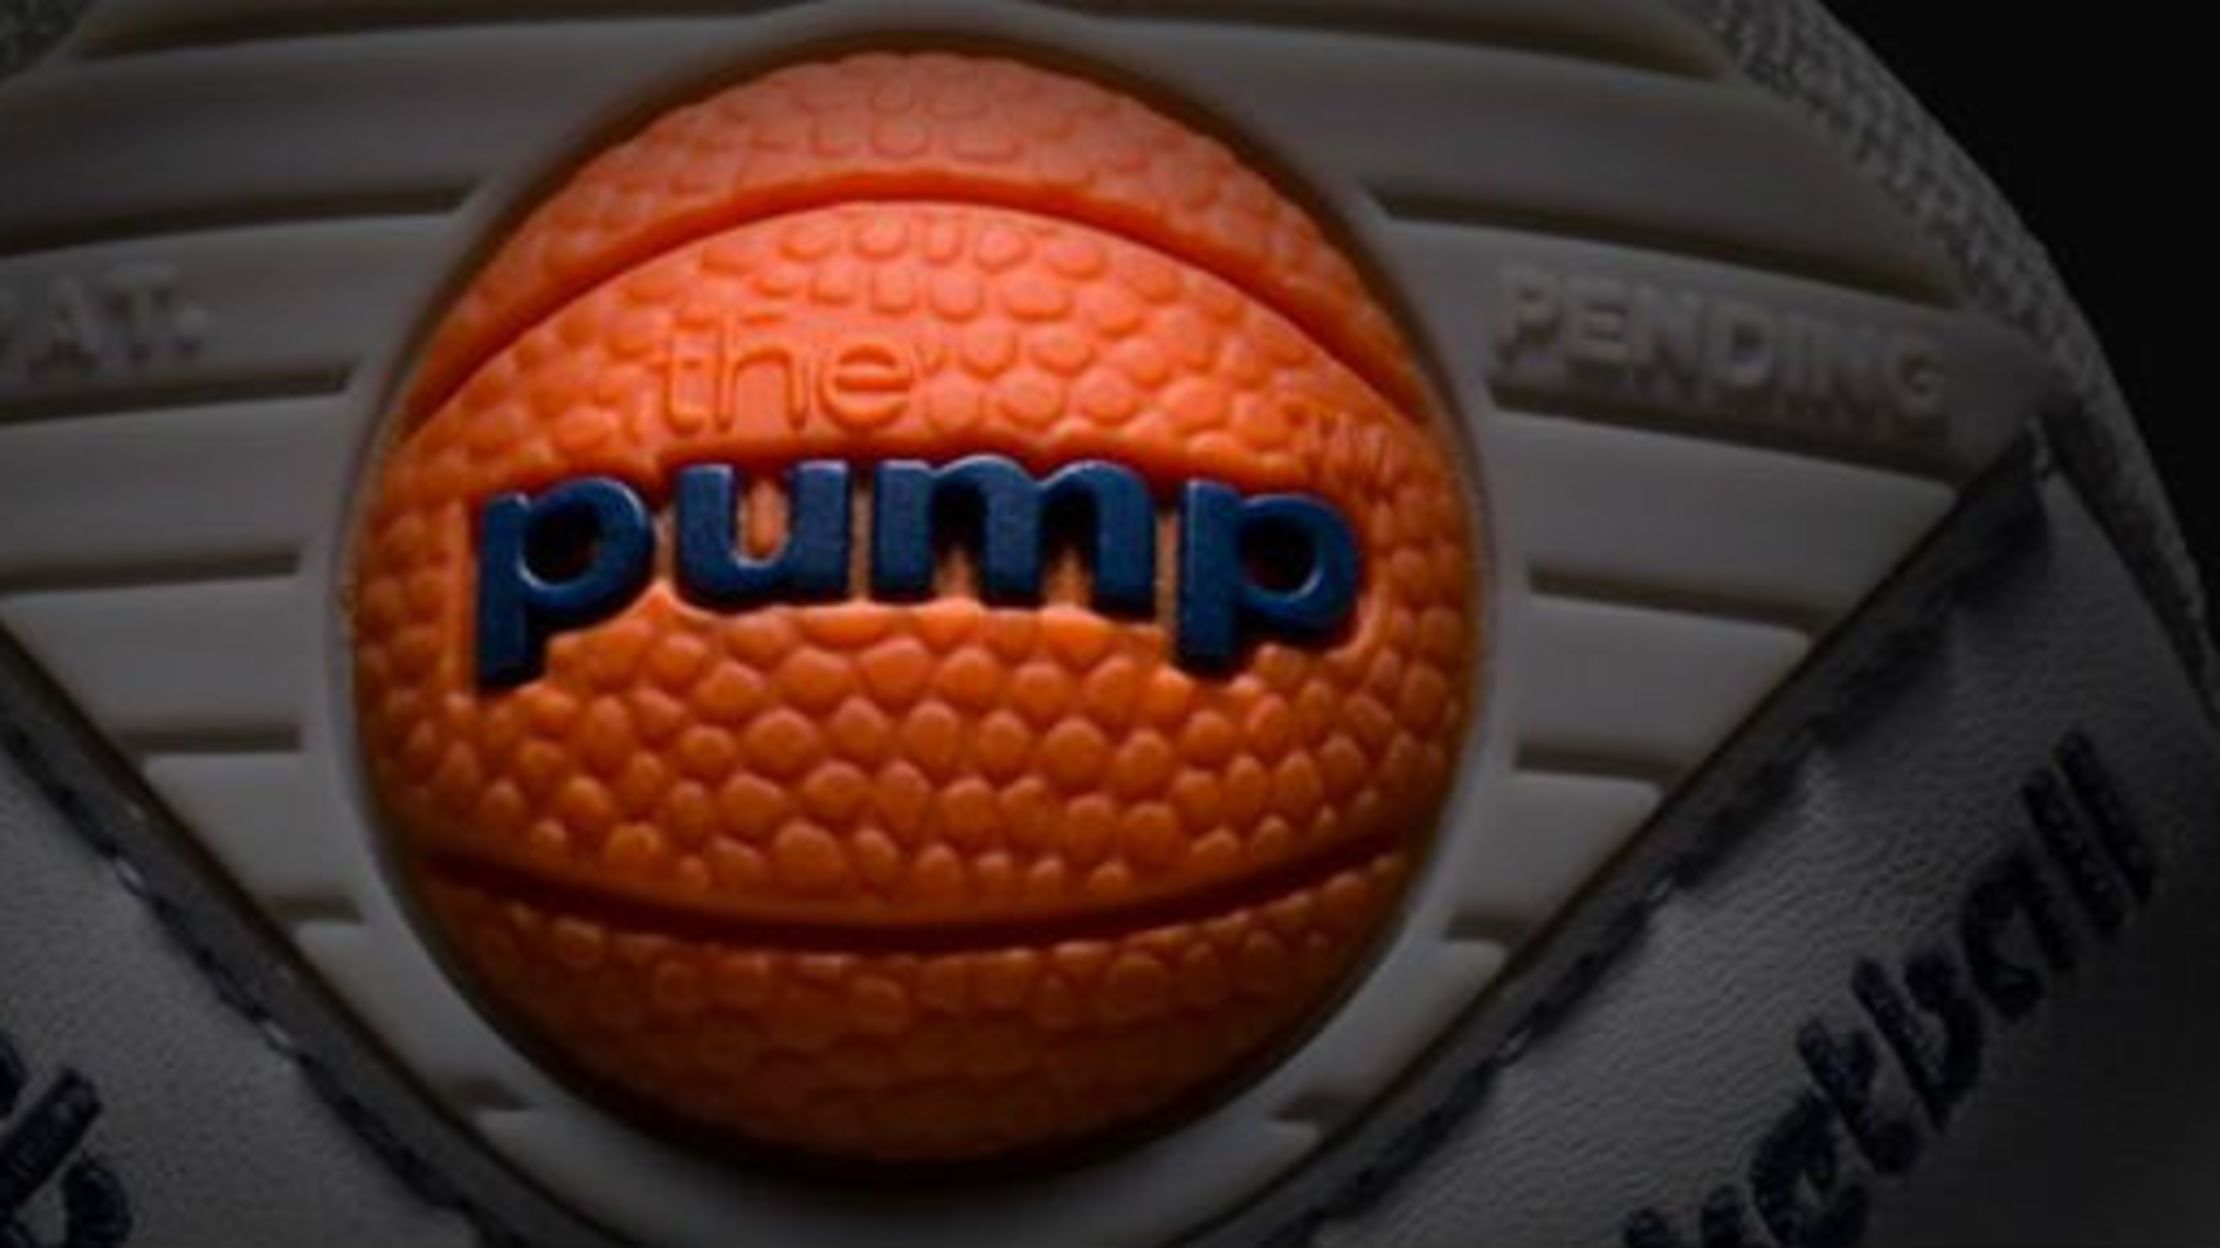 Atar Deshacer presidente  Adjusted for Inflation: A History of the Reebok Pump | Mental Floss